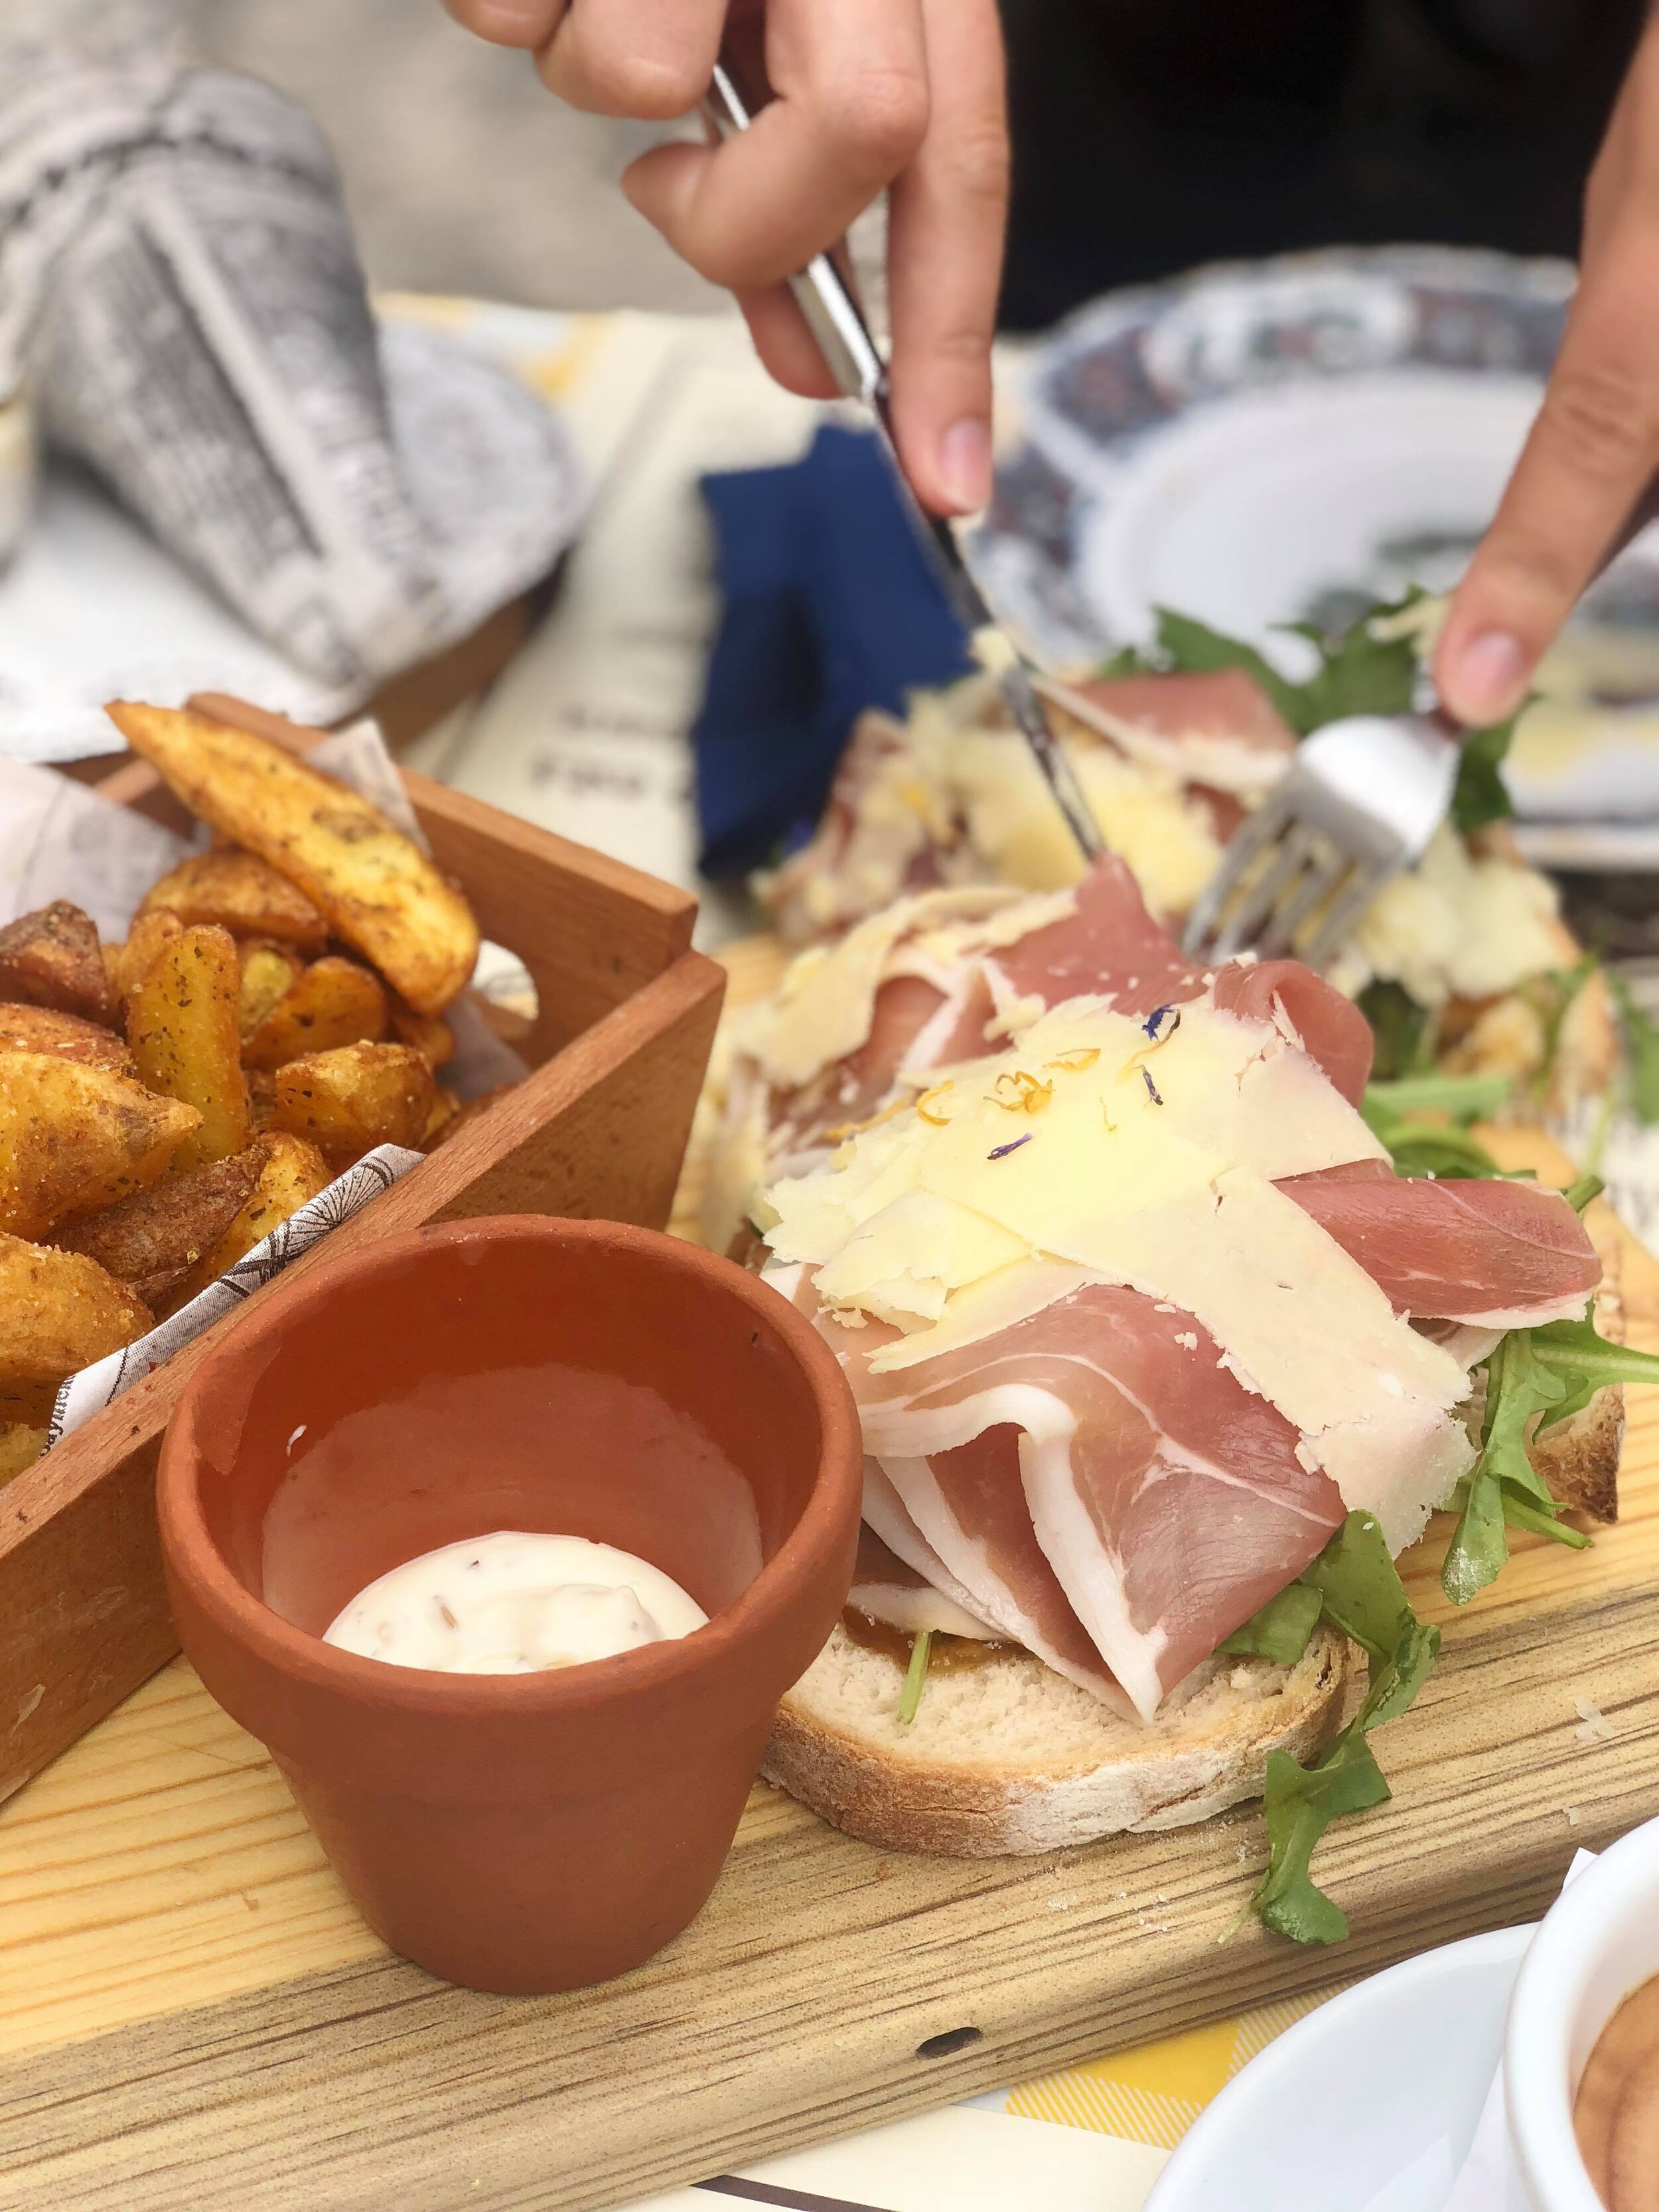 - Finally, a classic ham and cheese (really prosciutto and Parmesan shavings) on an open face sandwich, with a delightful side of 'batatas gomo' or seasoned potato wedges.P.S. Prefer fries instead? Ask for 'batatas palito,' literally potato sticks, to get 'em served the french way.